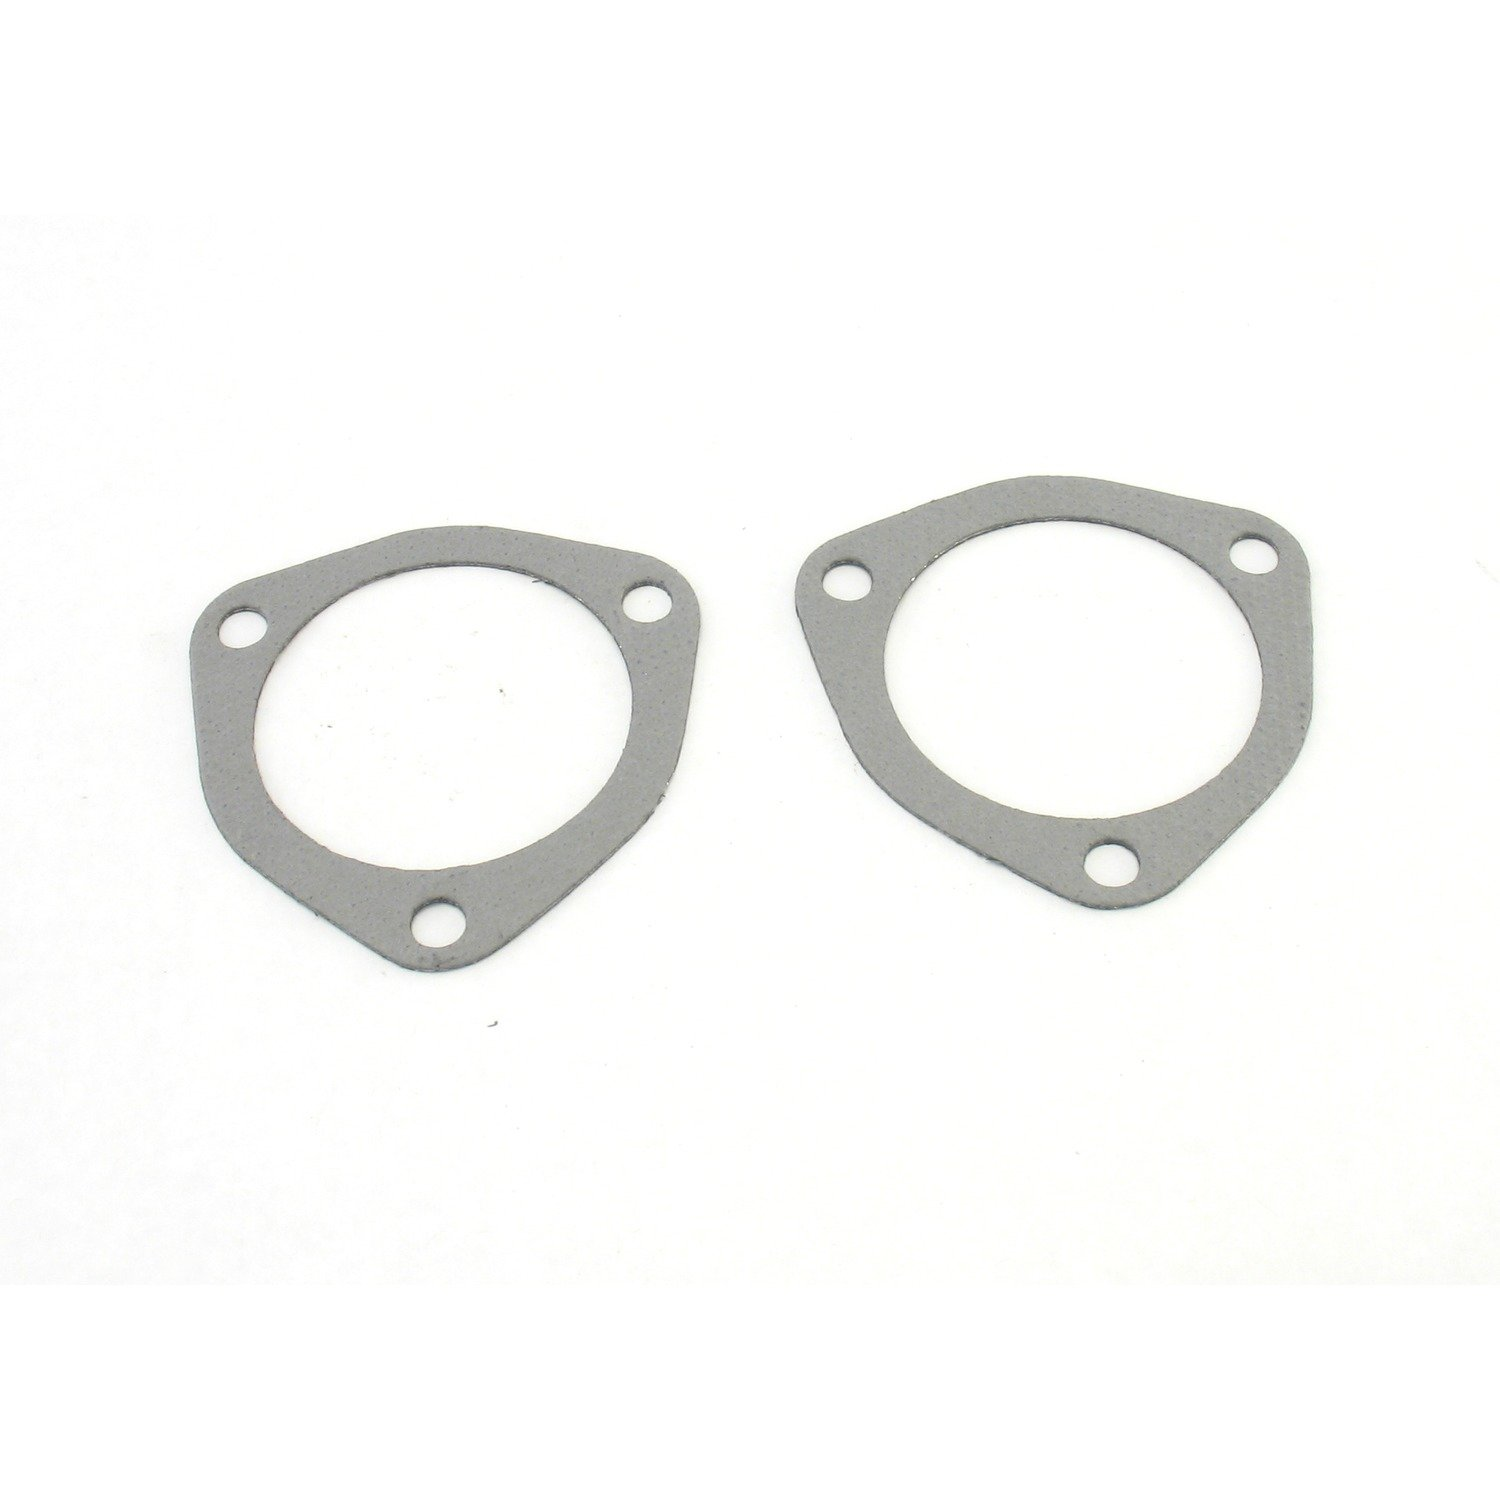 Patriot Exhaust H7947 3-Inch Collector Gasket